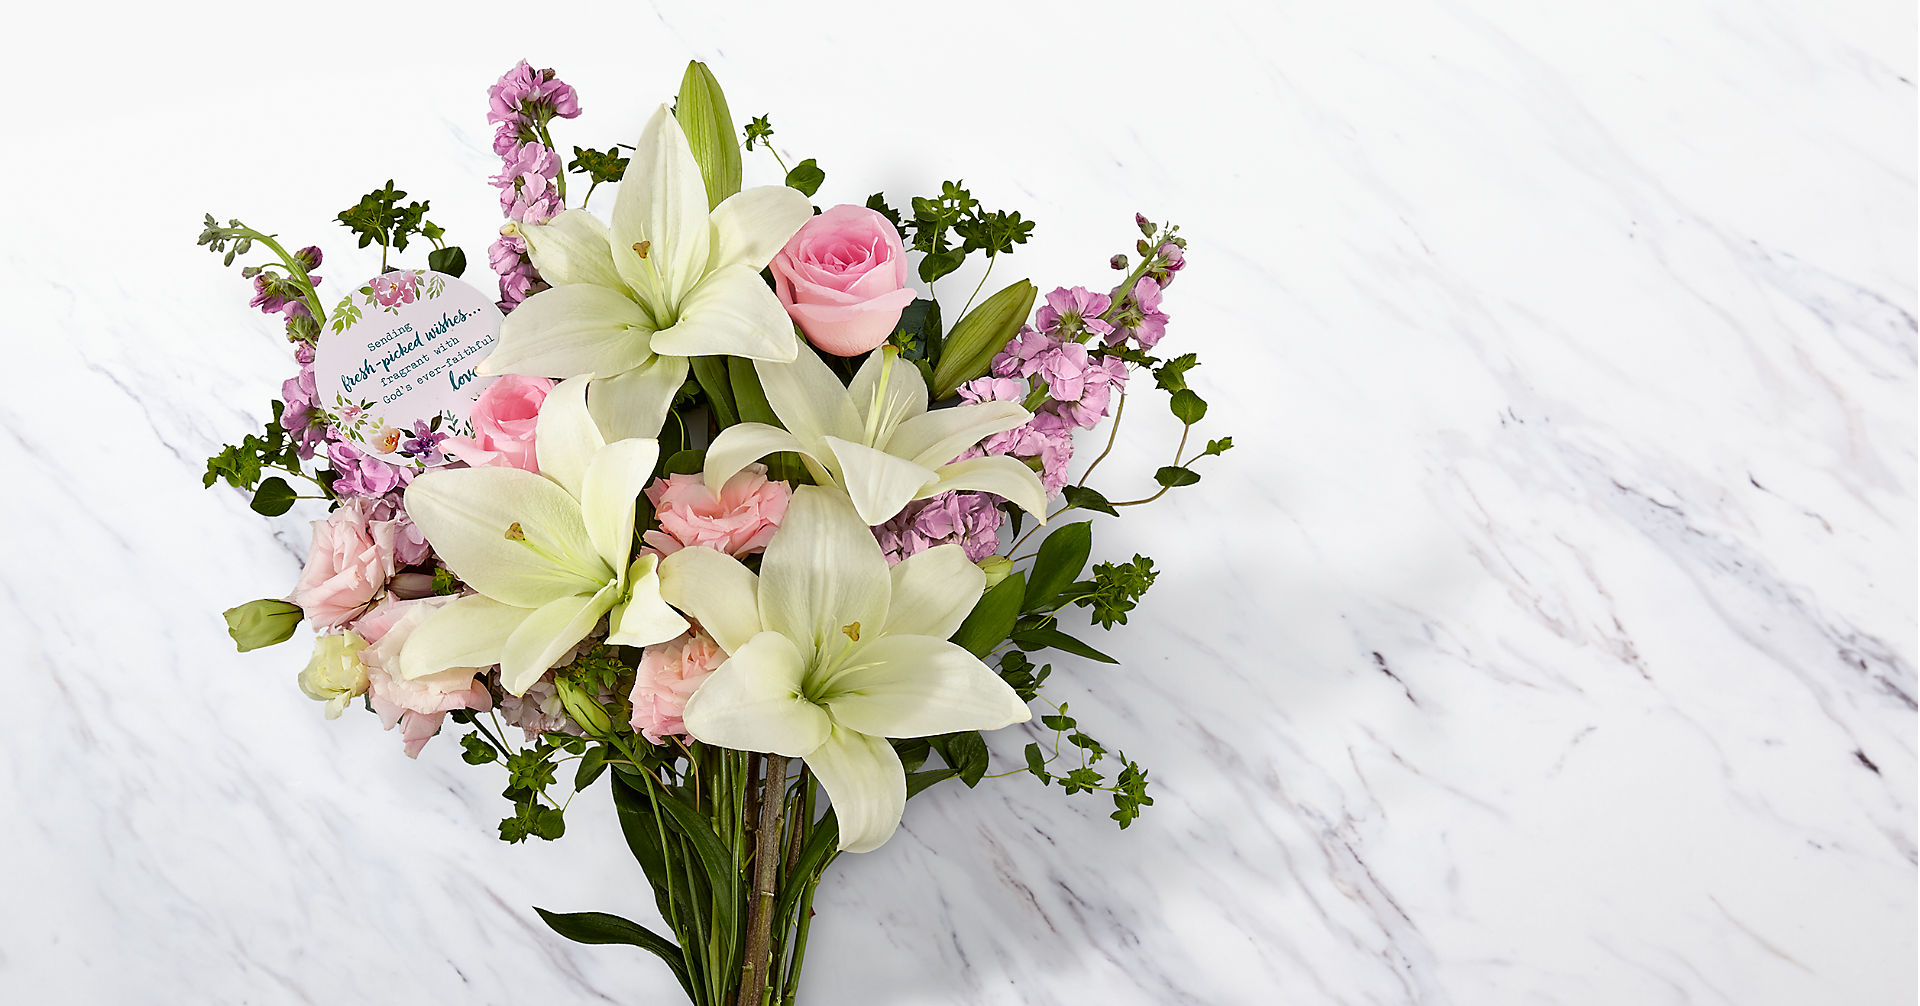 DaySpring® Life's Blessings Bouquet - Image 1 Of 4